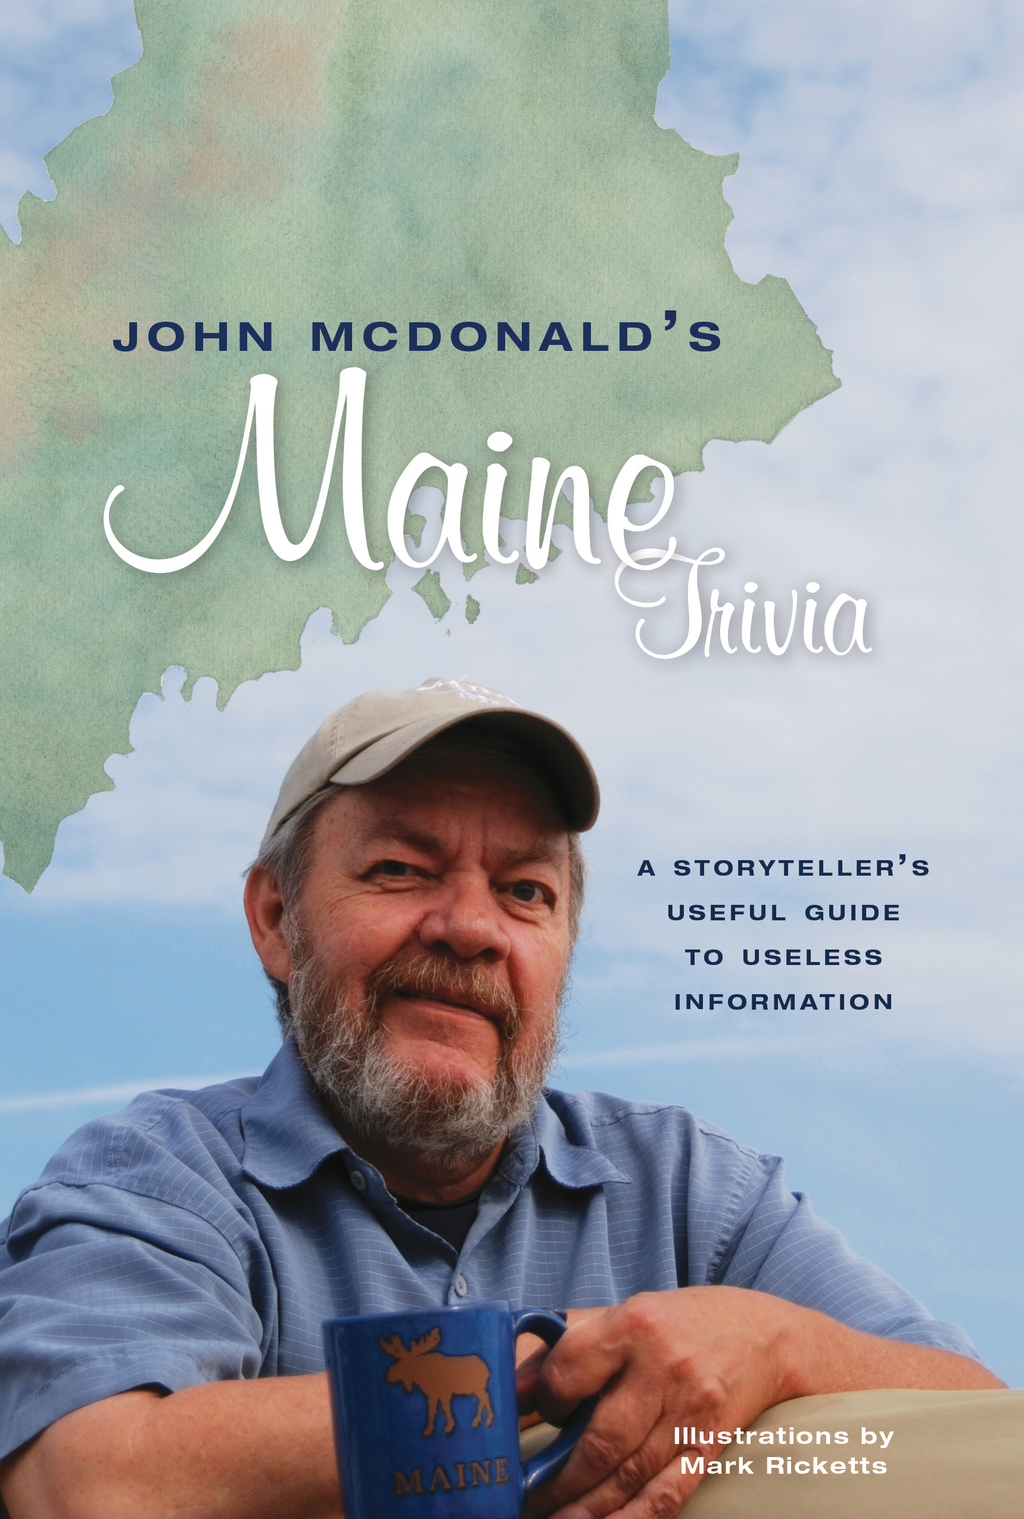 John McDonald's Maine Trivia: A Storyteller's Useful Guide to Useless Information